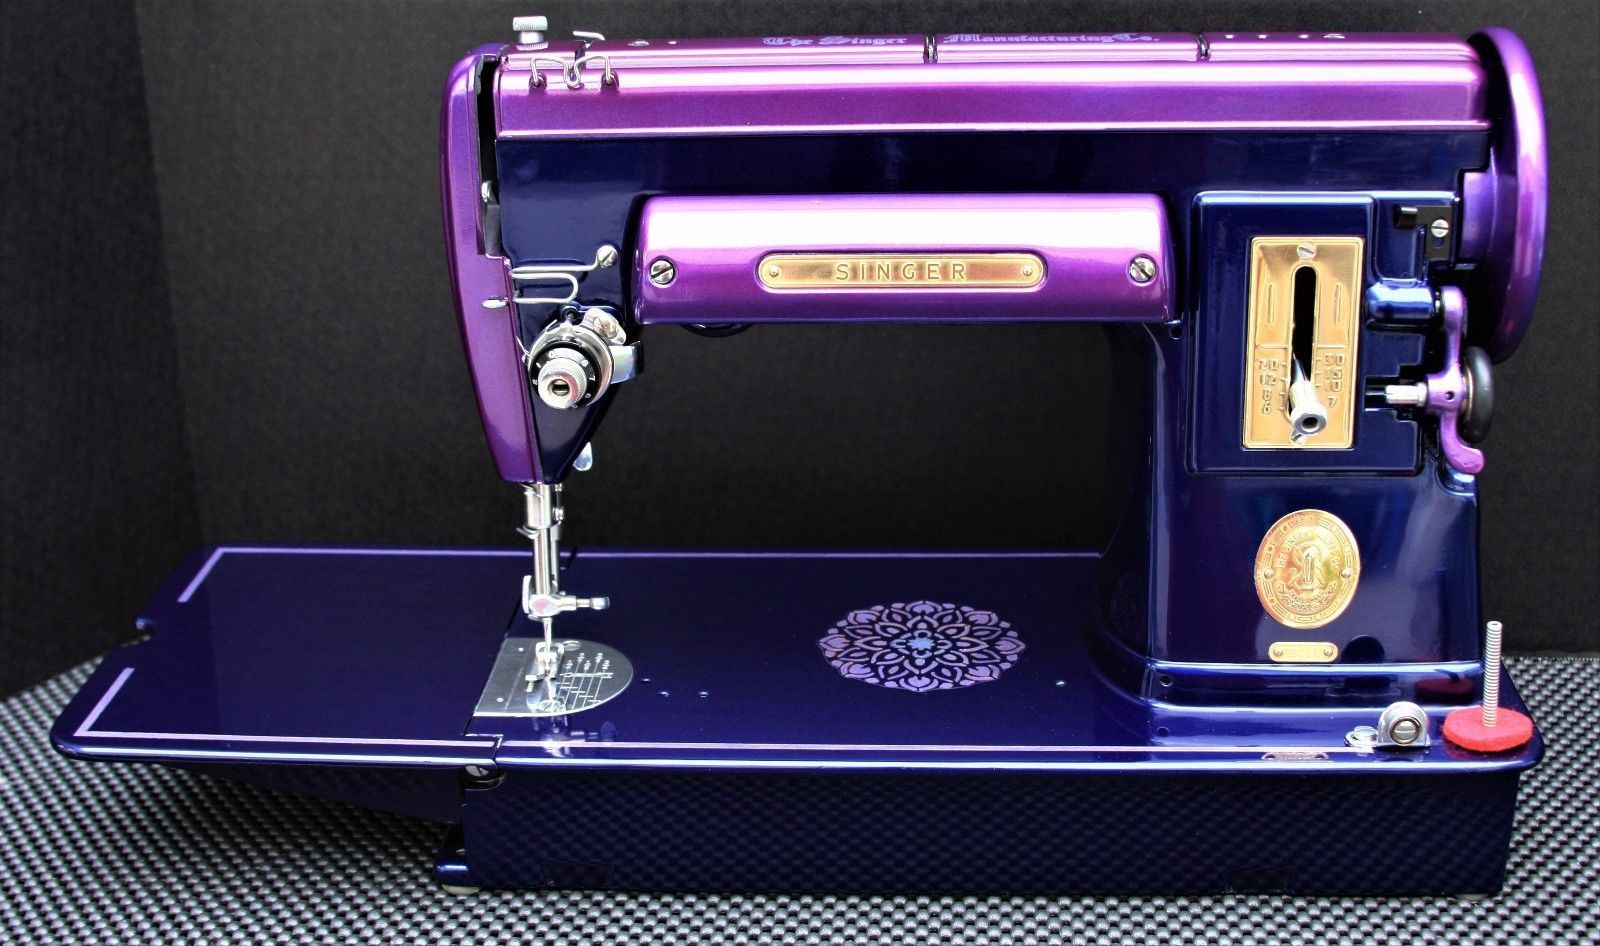 Vintage Singer 301 Slant Needle Sewing Machine Untested ... on hvac diagrams, switch diagrams, motor diagrams, pinout diagrams, series and parallel circuits diagrams, sincgars radio configurations diagrams, electronic circuit diagrams, transformer diagrams, honda motorcycle repair diagrams, electrical diagrams, smart car diagrams, friendship bracelet diagrams, lighting diagrams, engine diagrams, gmc fuse box diagrams, battery diagrams, internet of things diagrams, troubleshooting diagrams, led circuit diagrams,